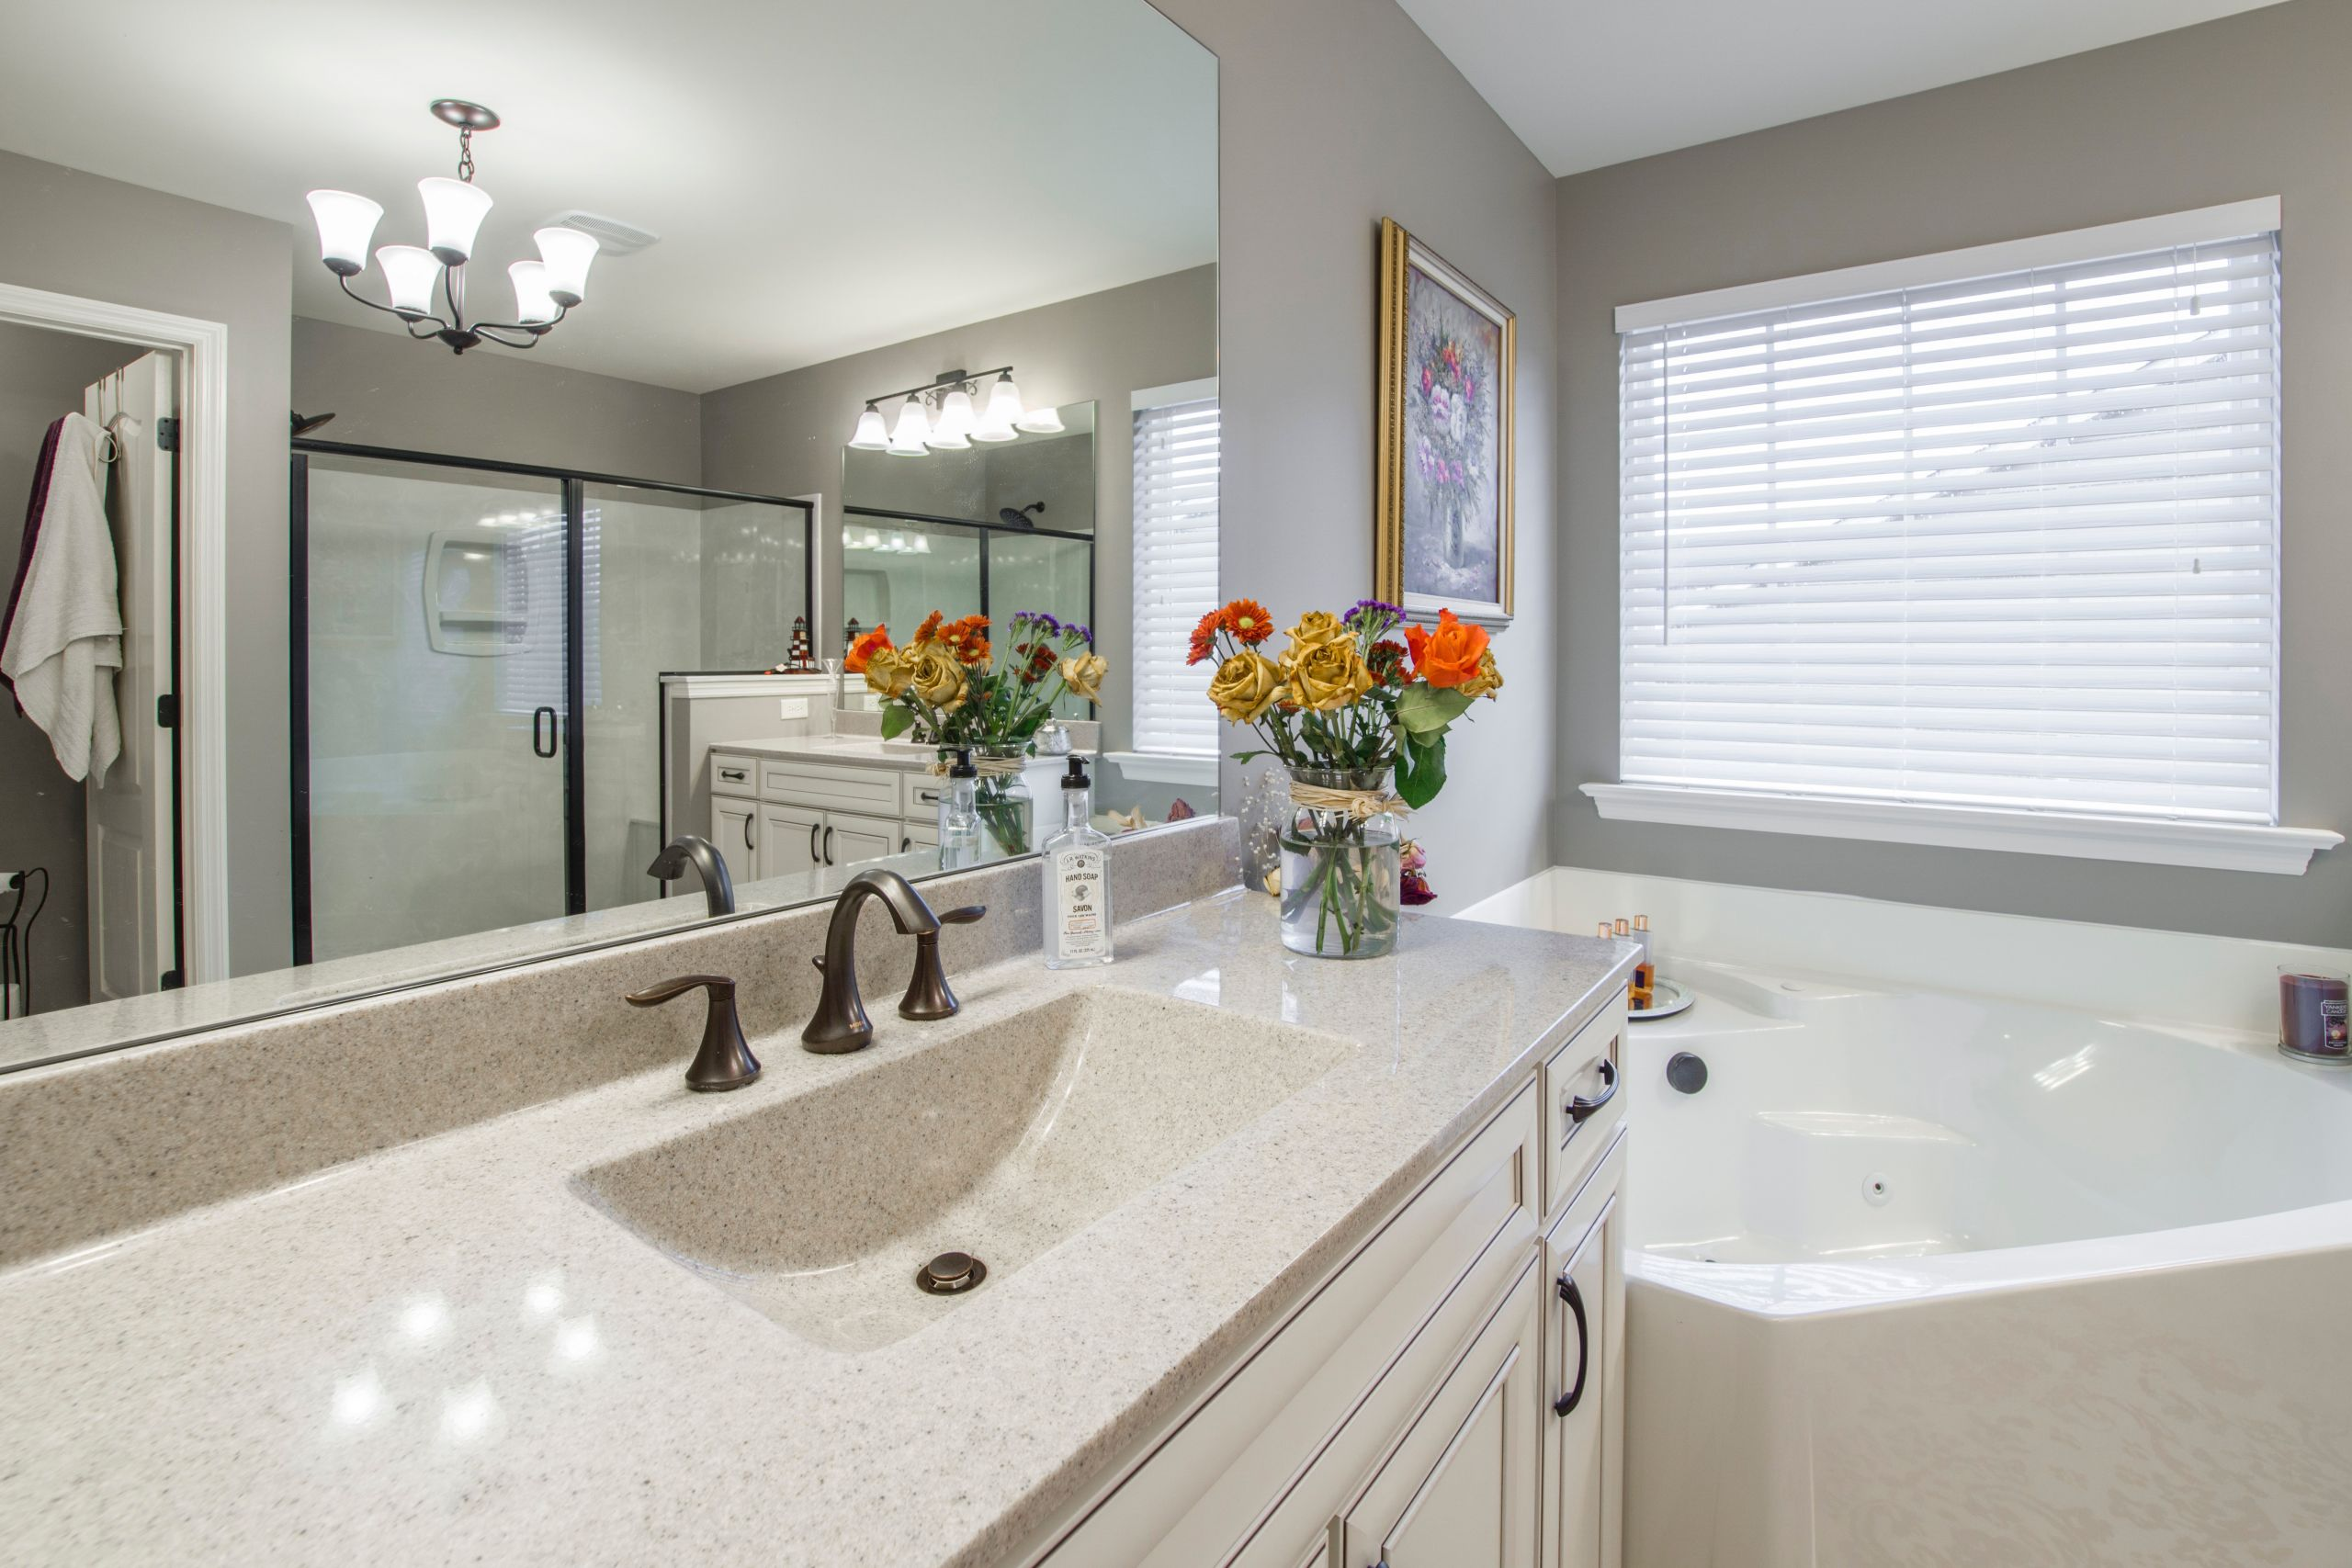 Bathroom Remodel Ideas 2020  7 Bathroom Remodel Ideas to Look Out for in 2020